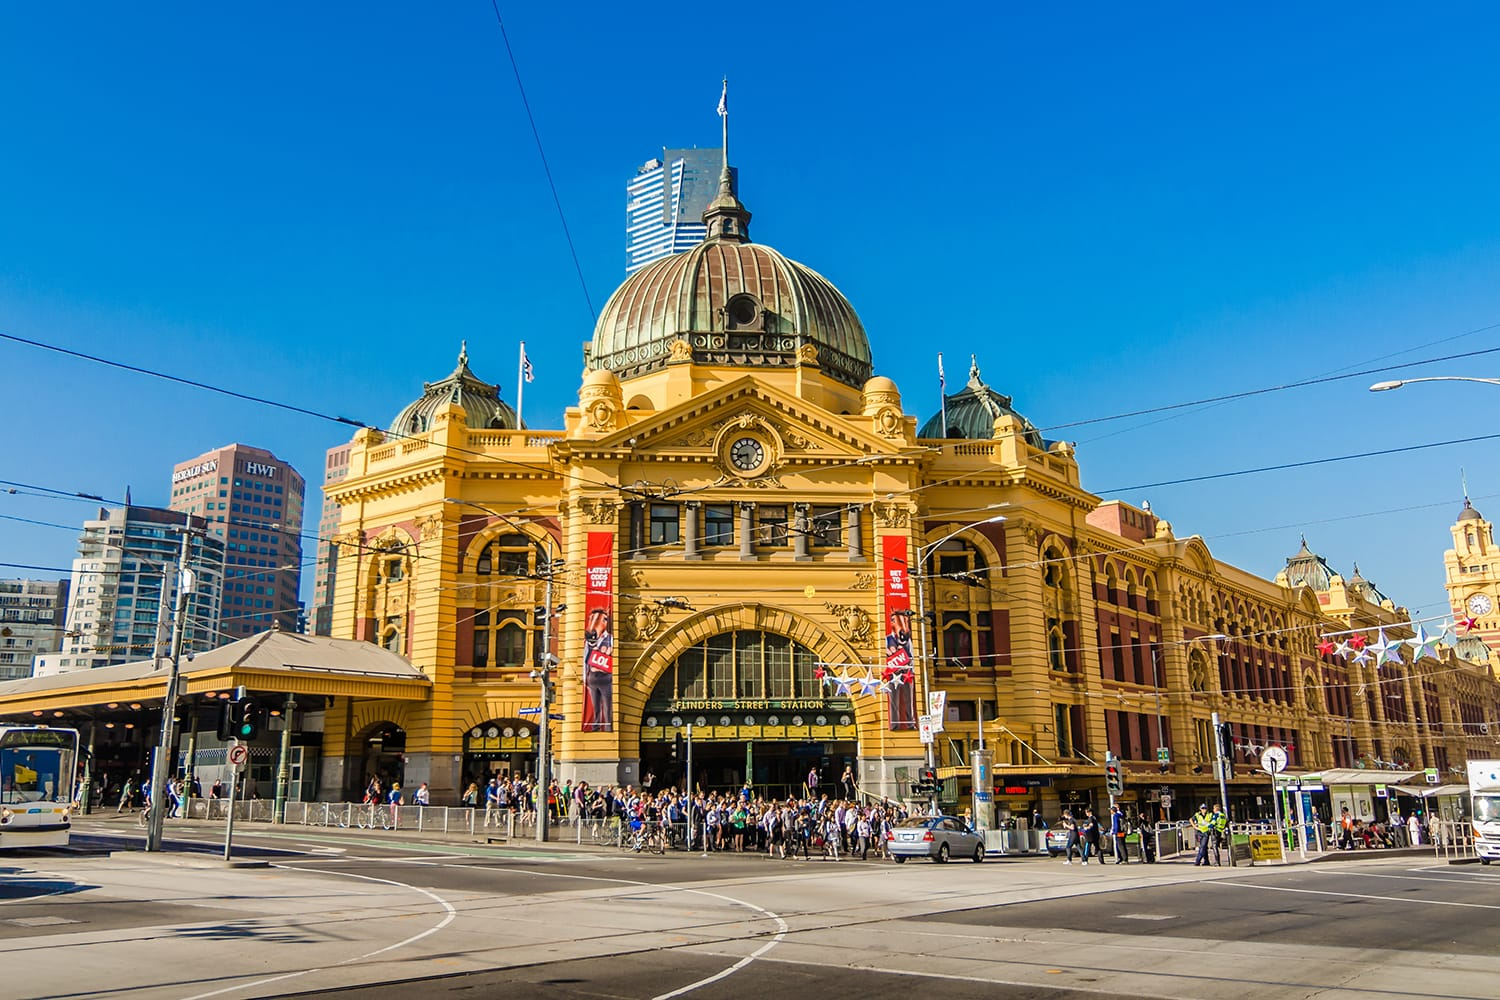 Flinders Street Station is the biggest station in Melbourne, Australia